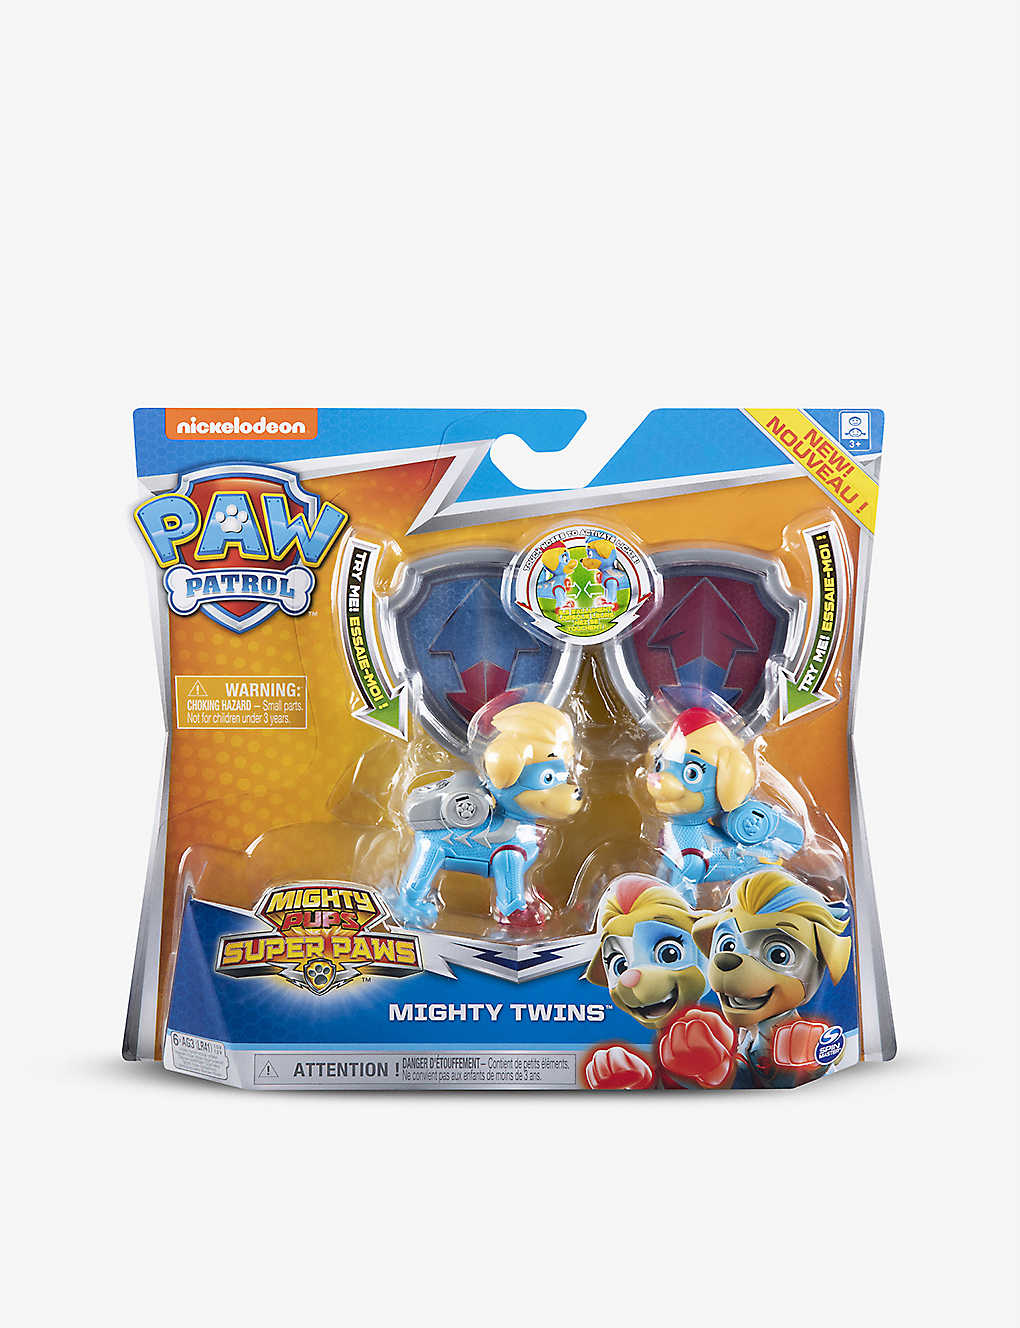 PAW PATROL: Mighty Twins Light Up set of two